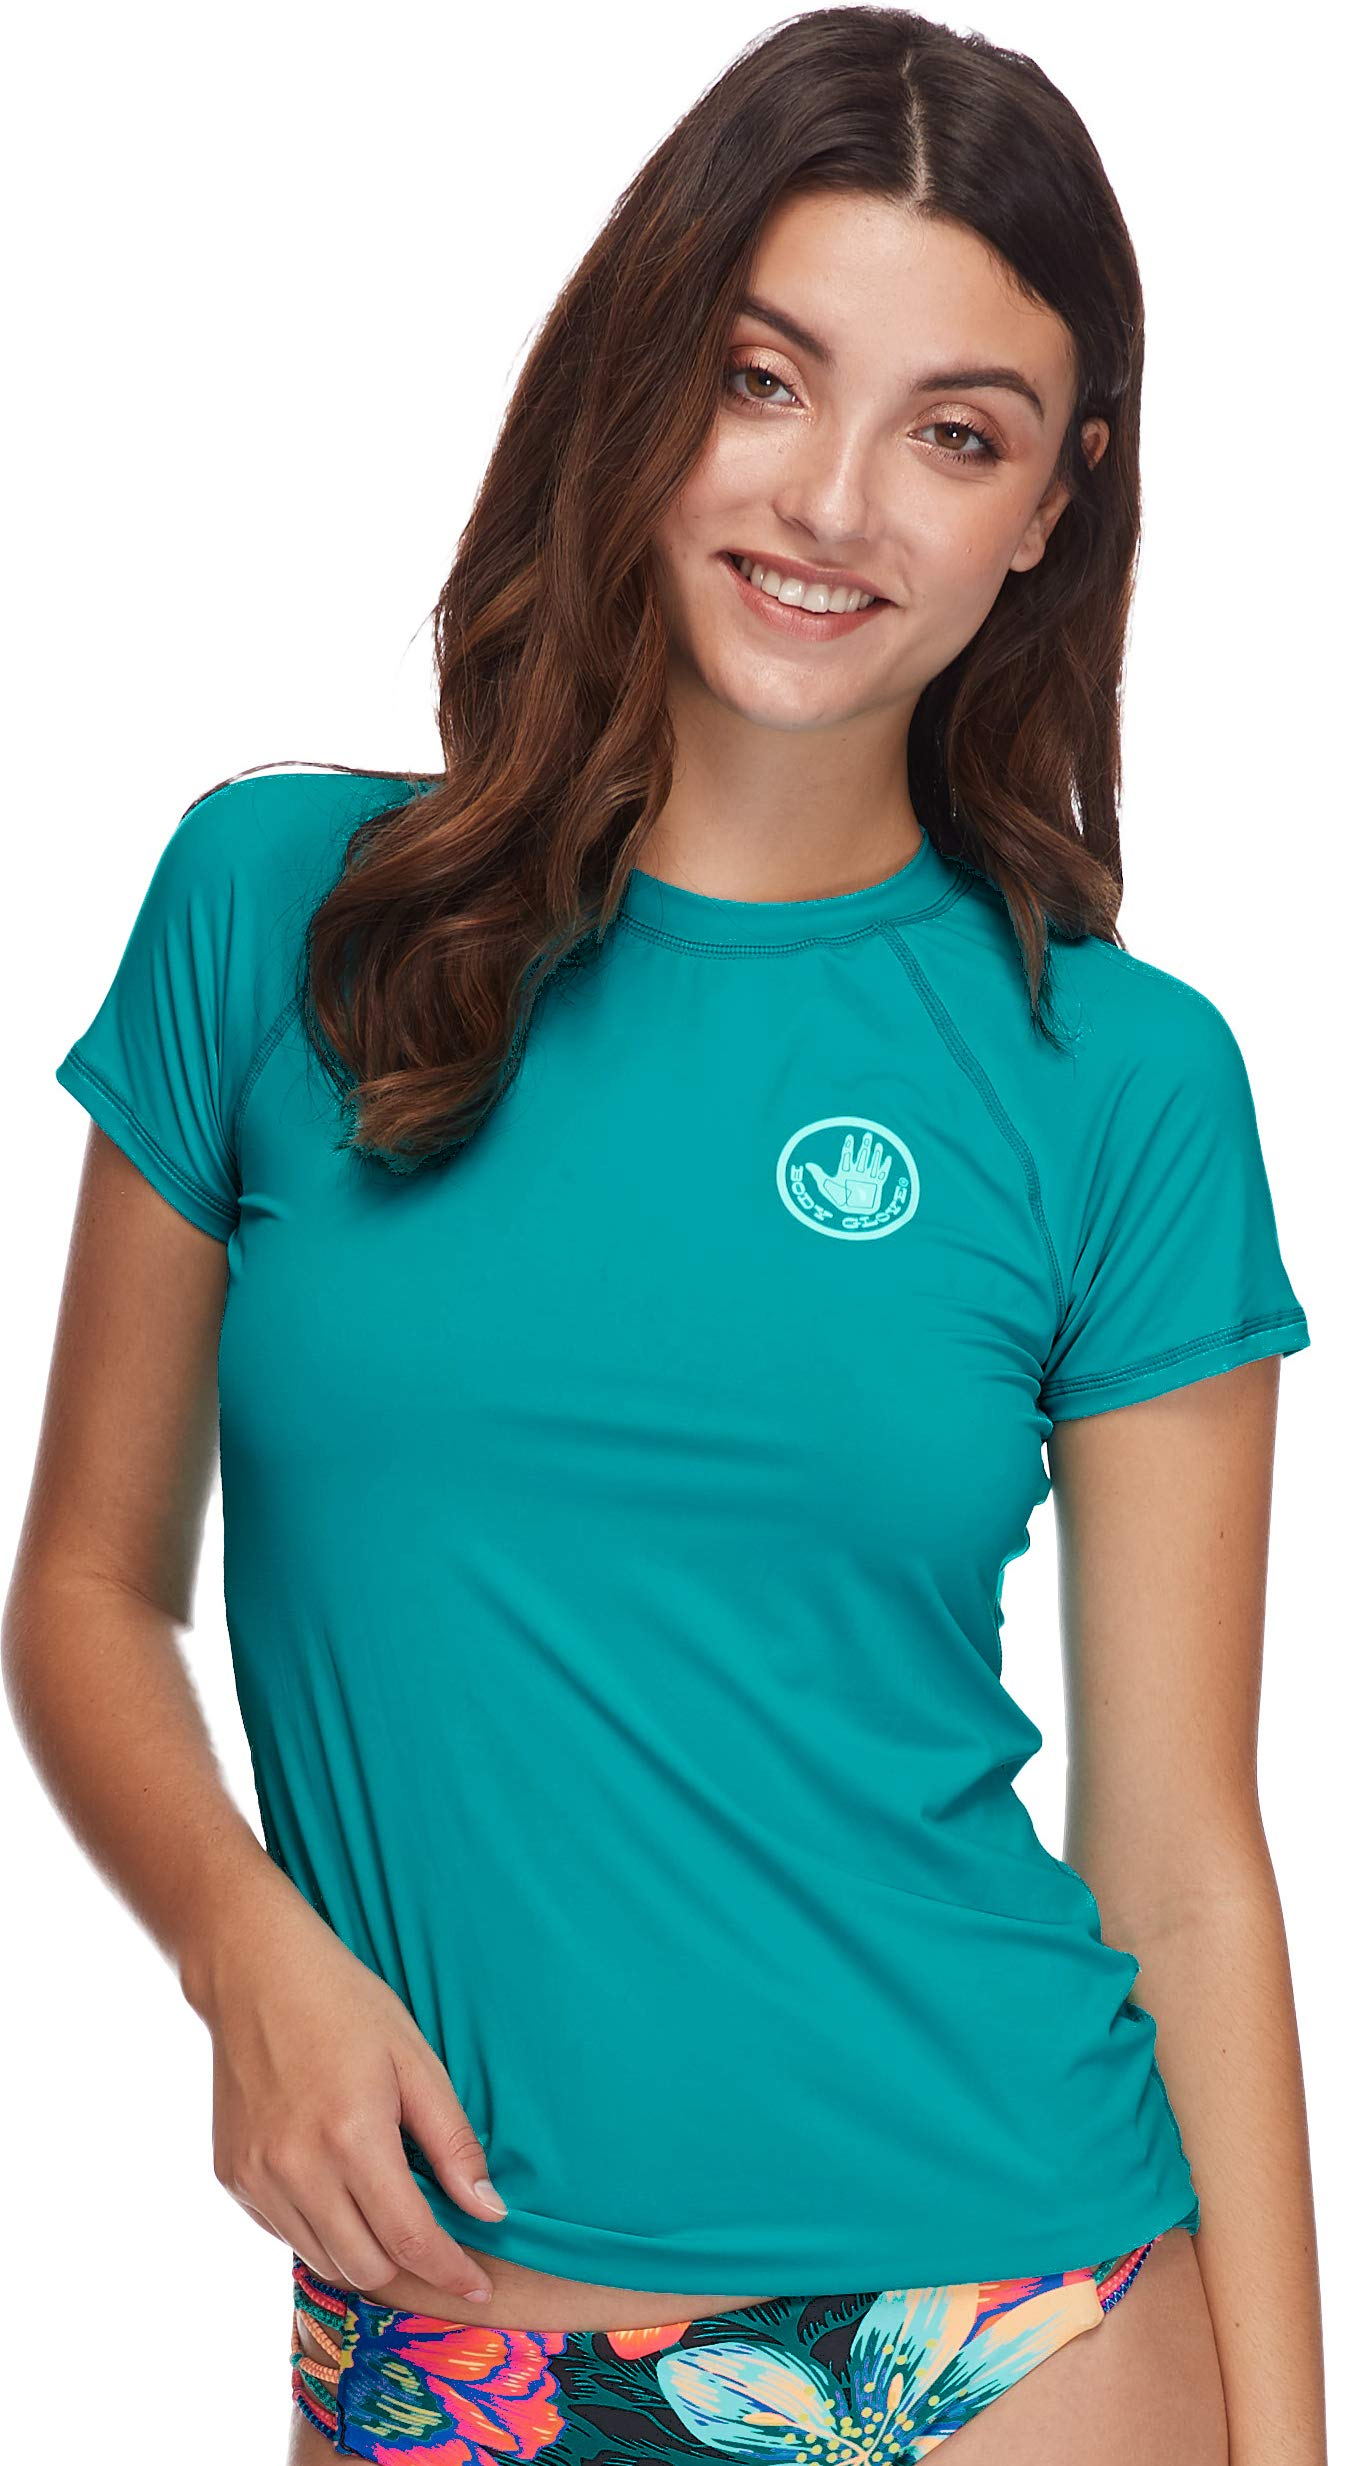 Body Glove Women's Smoothies in-Motion Solid Short Sleeve Rashguard with UPF 50 Peacock I, Small by Body Glove